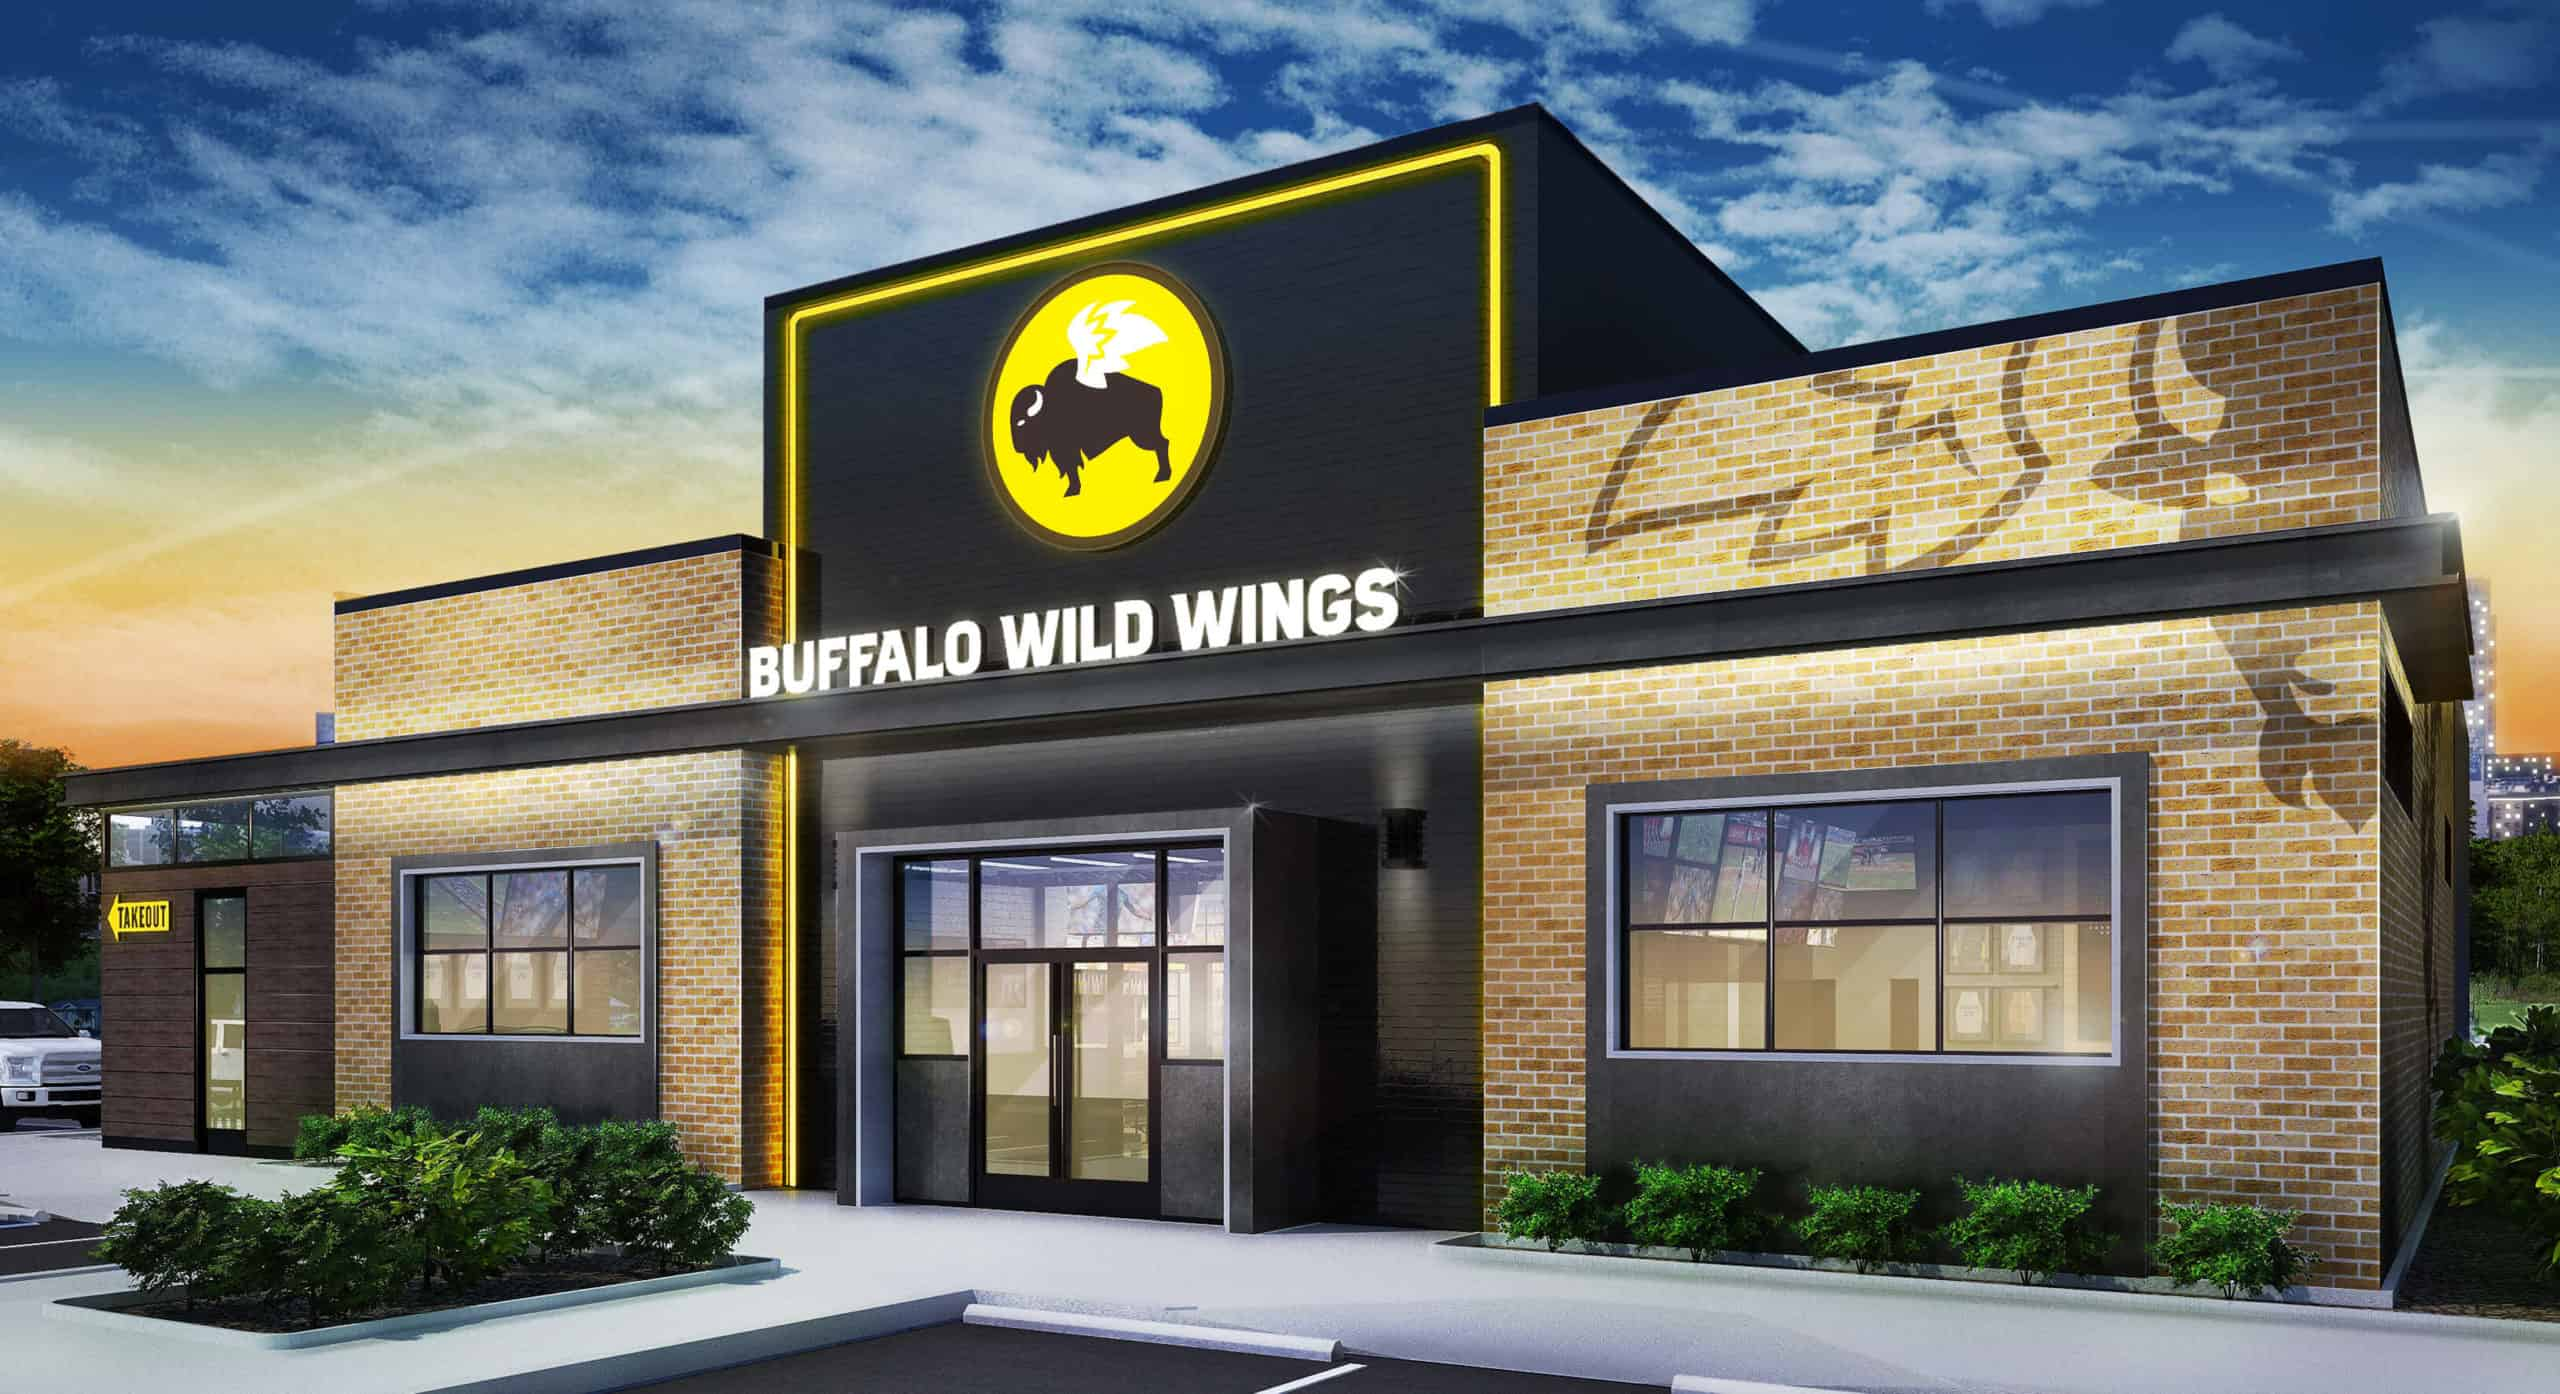 Buffalo Wild Wings customer loyalty program